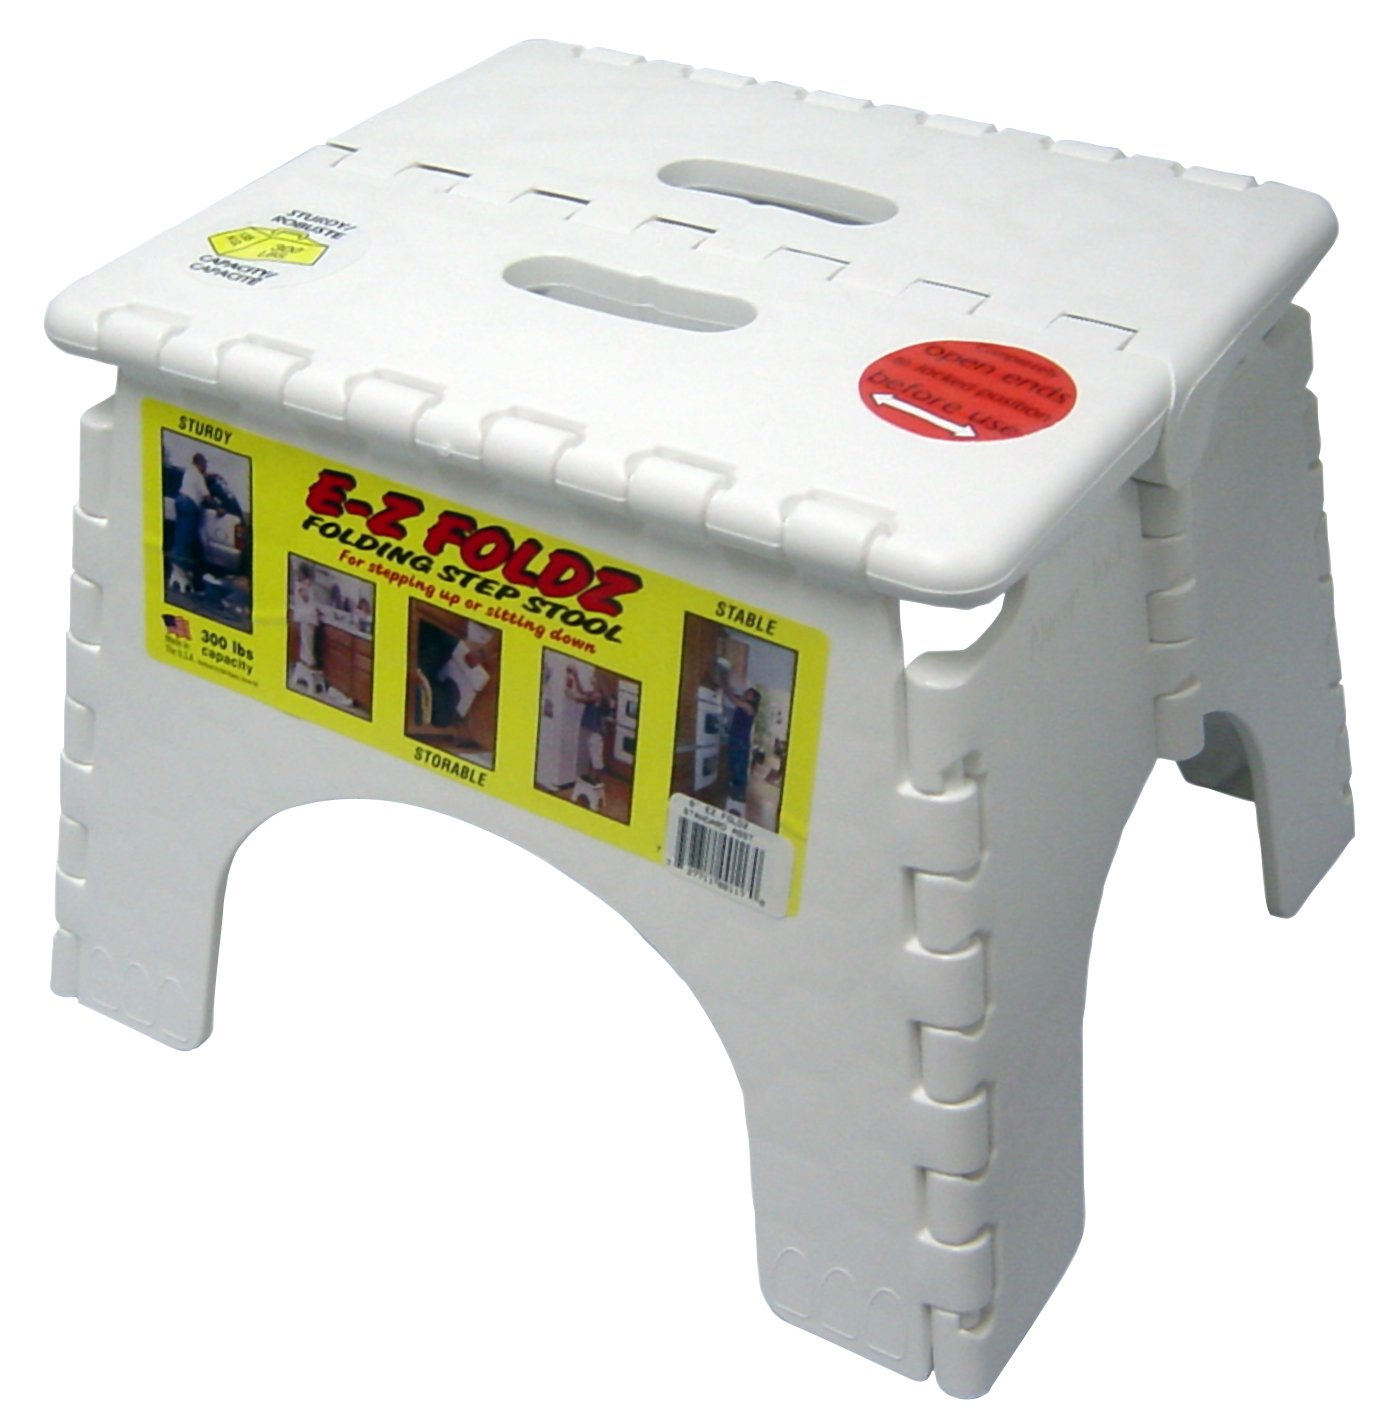 Amazon.com Bu0026R Plastics 101-6 EZ 9-Inch Foldz Step Stool White Automotive  sc 1 st  Amazon.com : folding step up stool - islam-shia.org